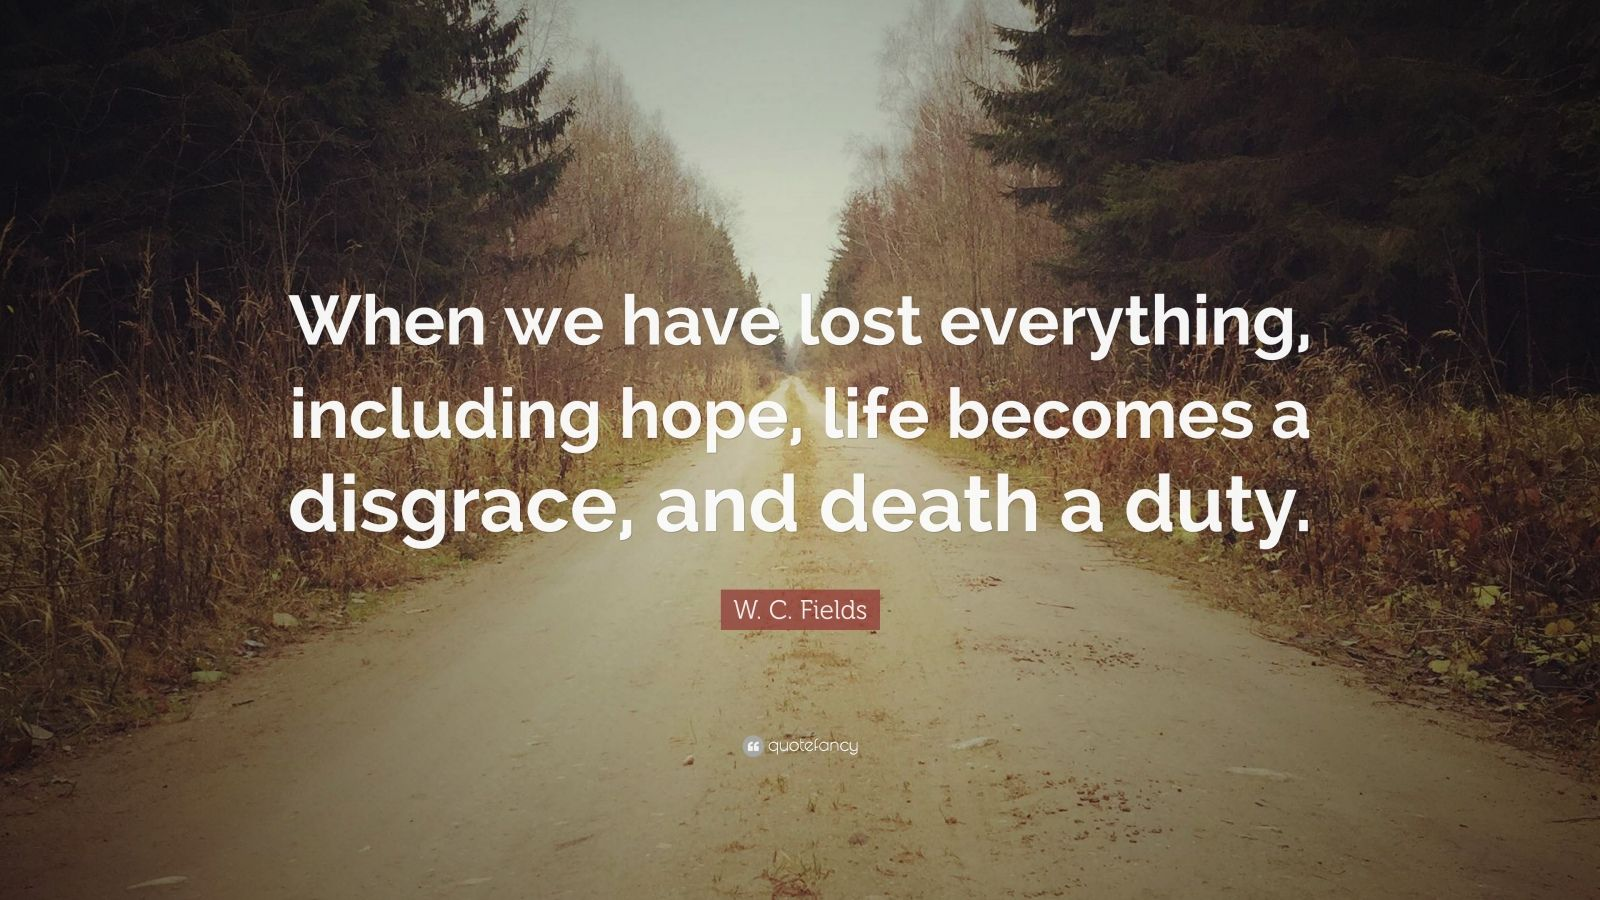 """W. C. Fields Quote: """"When we have lost everything, including hope, life becomes a disgrace, and death a duty."""""""